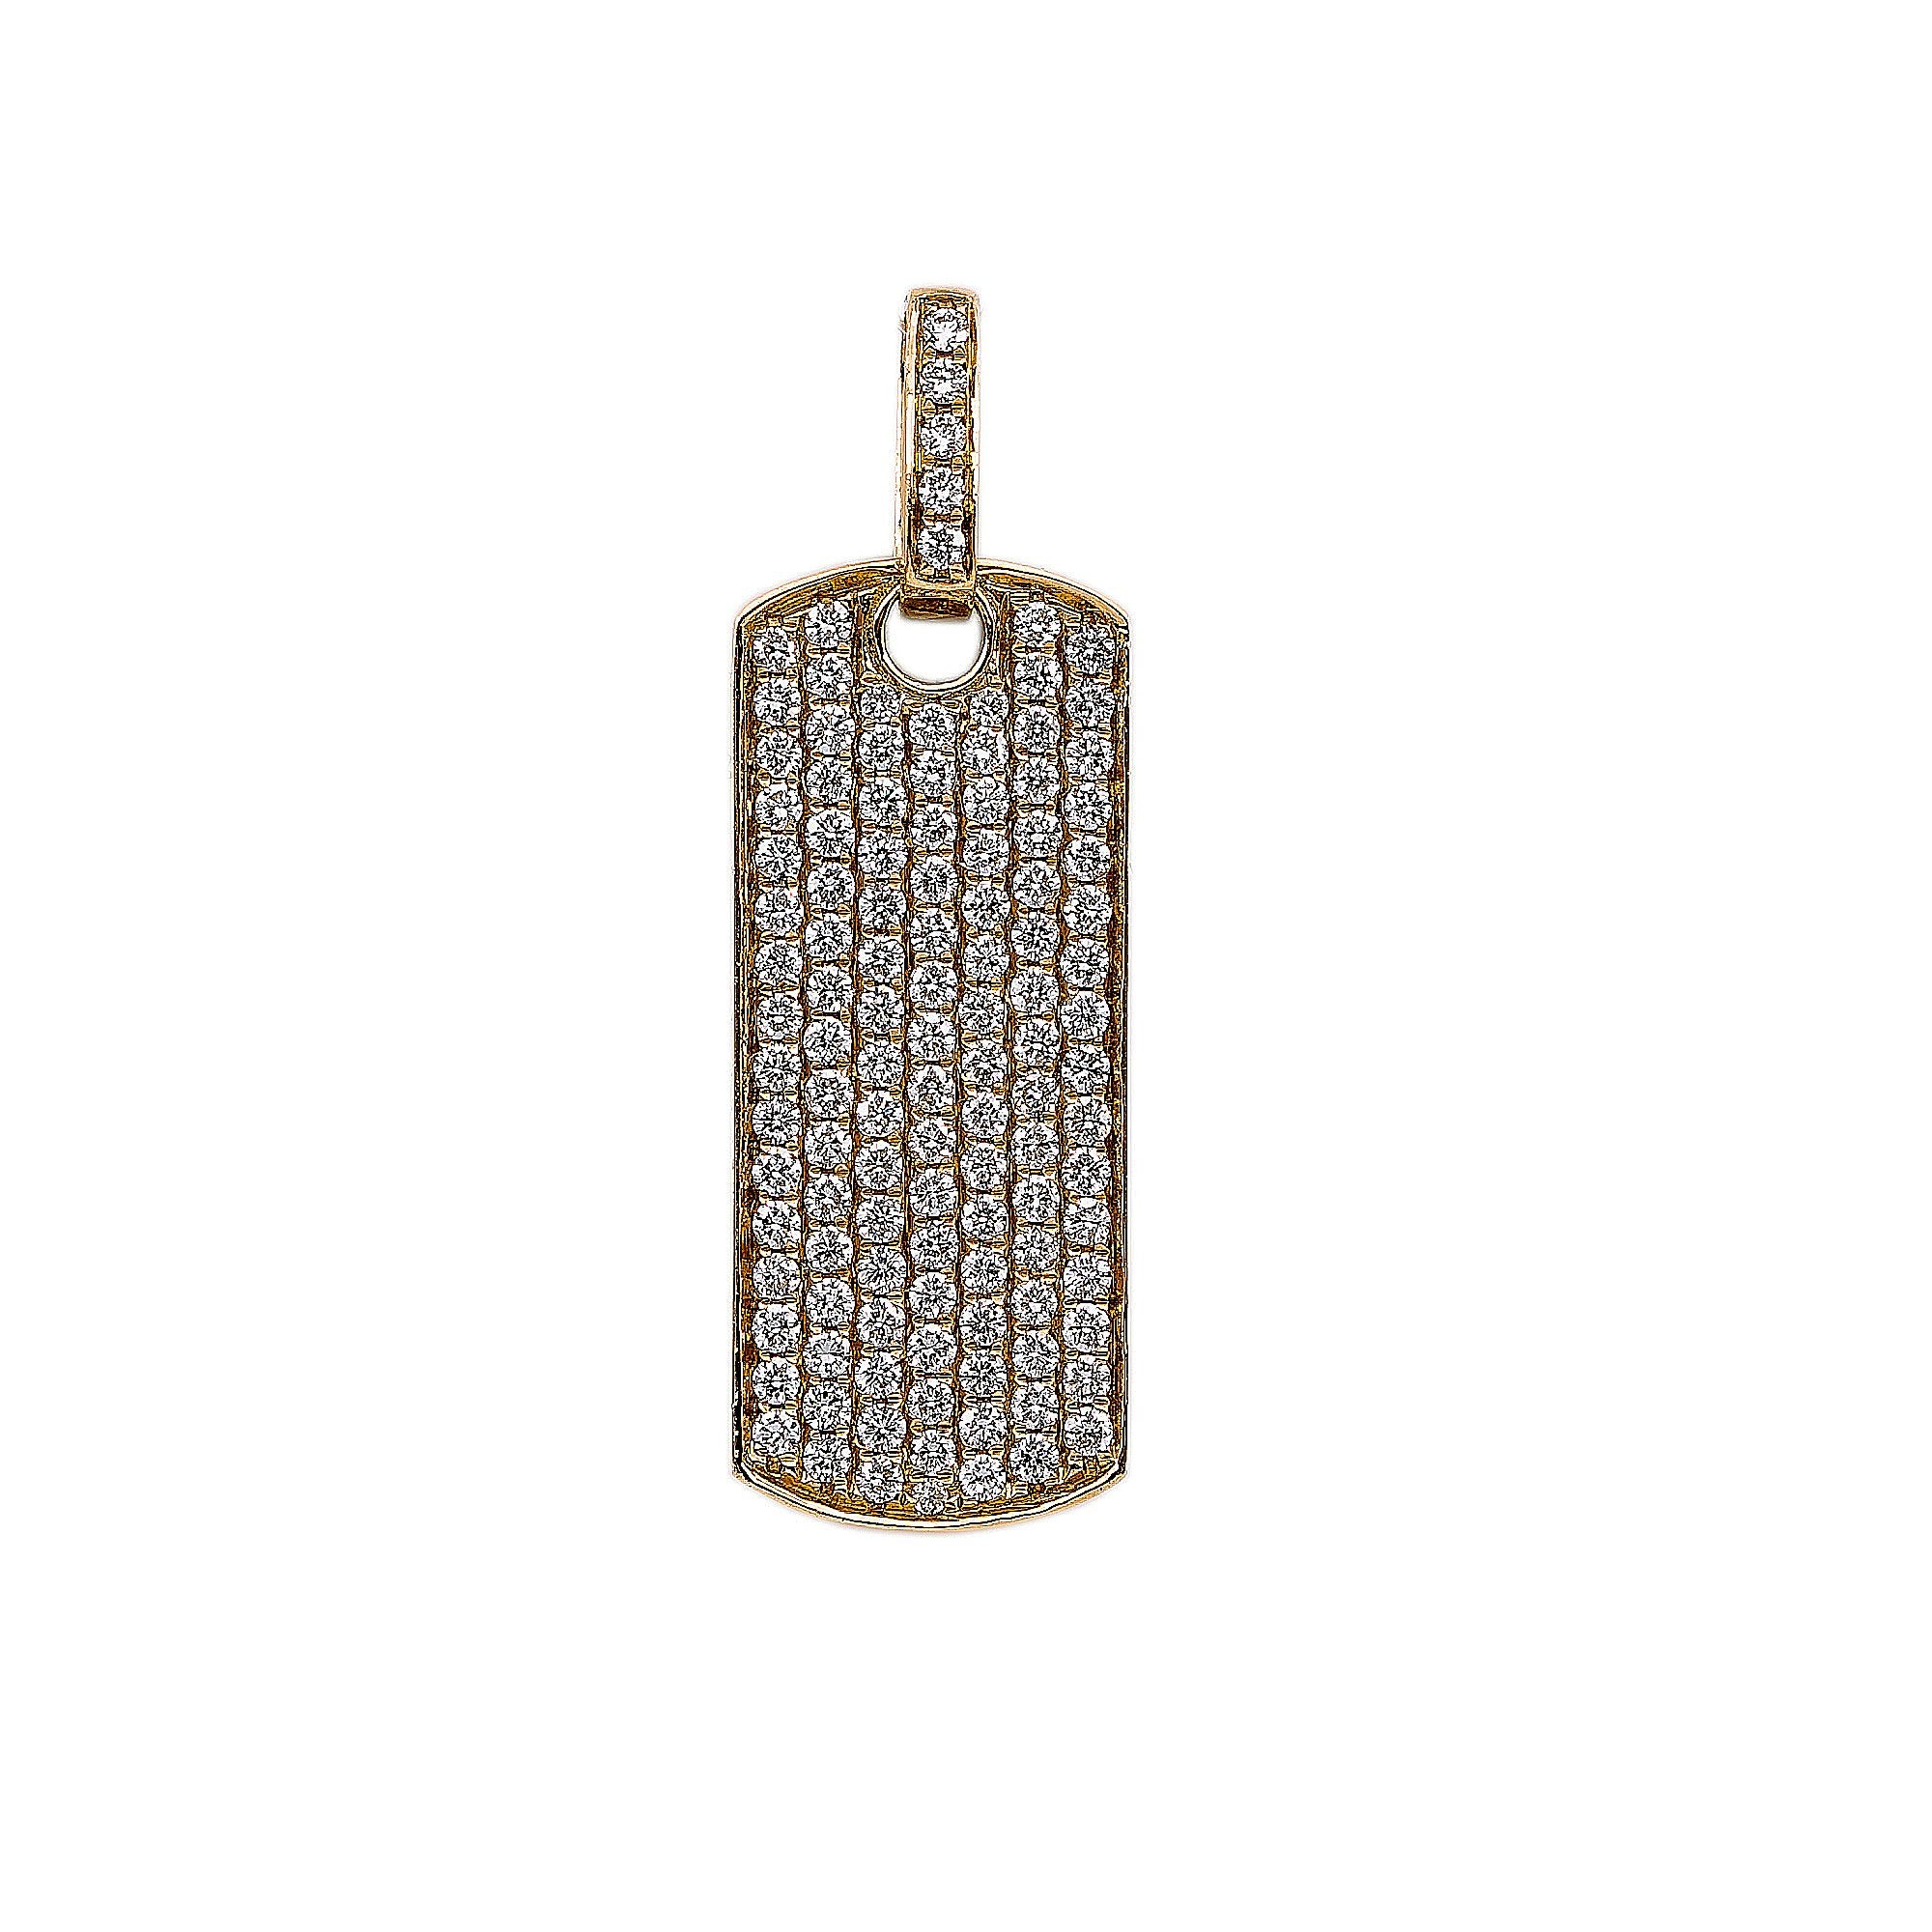 14K Yellow Gold Rectangular Shaped Pendant